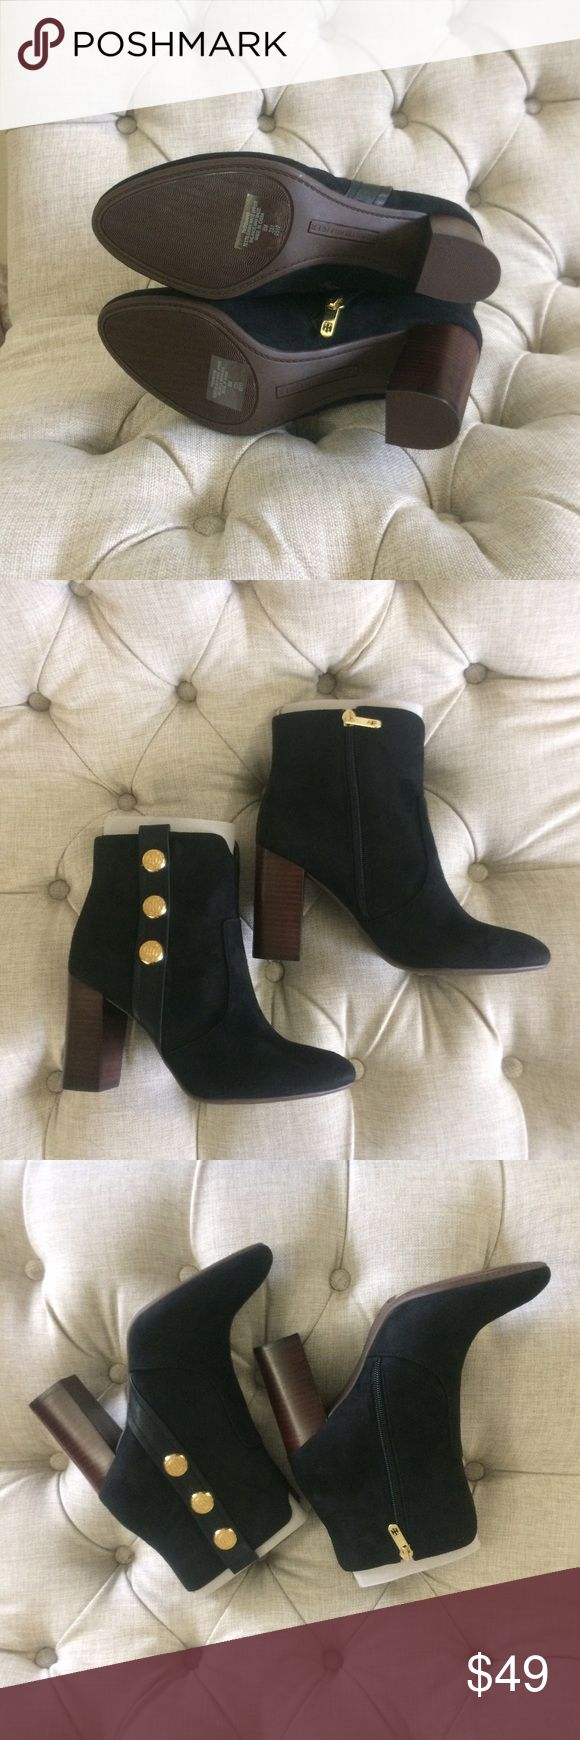 New Tommy Hilfiger Black black ankle boots leather Brand new in box. True to size. Super cute! I got these in every color possible but decided to keep the olive color ones. Unfortunately i have too many black ankle boots :( price firm. Thank u!! Tommy Hilfiger Shoes Ankle Boots & Booties